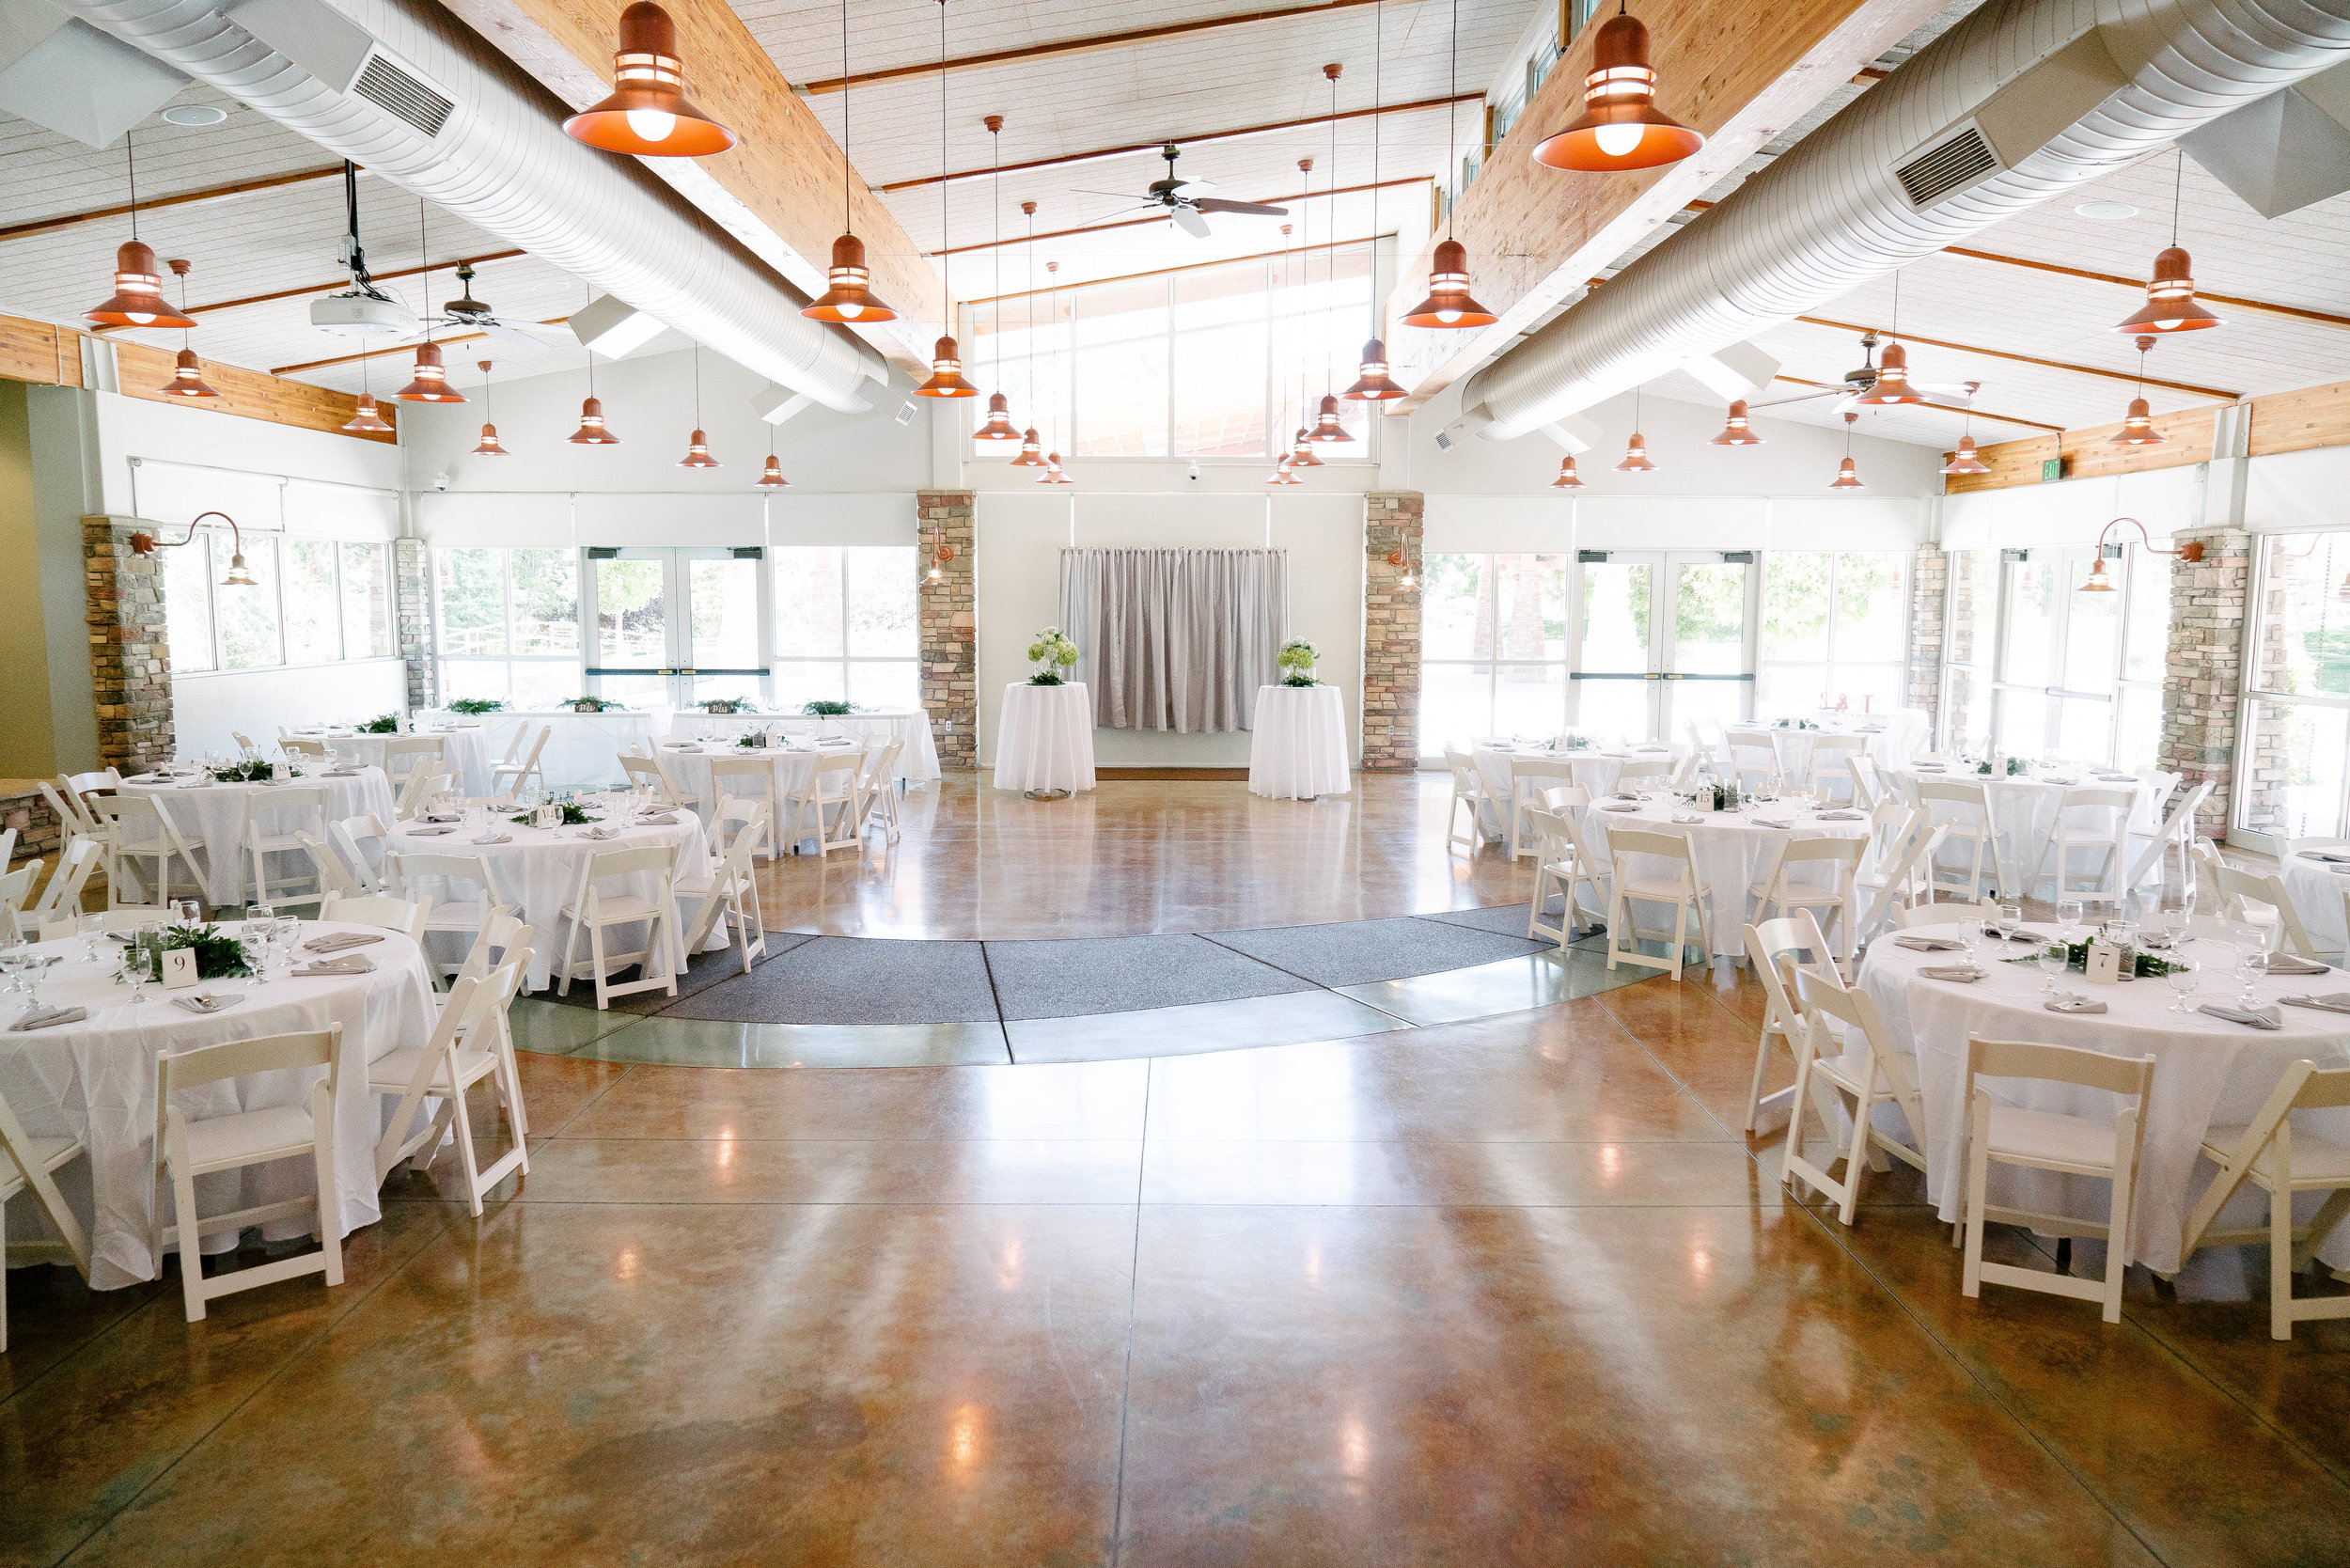 Barber Park Wedding- Boise Wedding- Boise Wedding Photographer- Ceremony Space Ideas- Wedding Photography Ideas